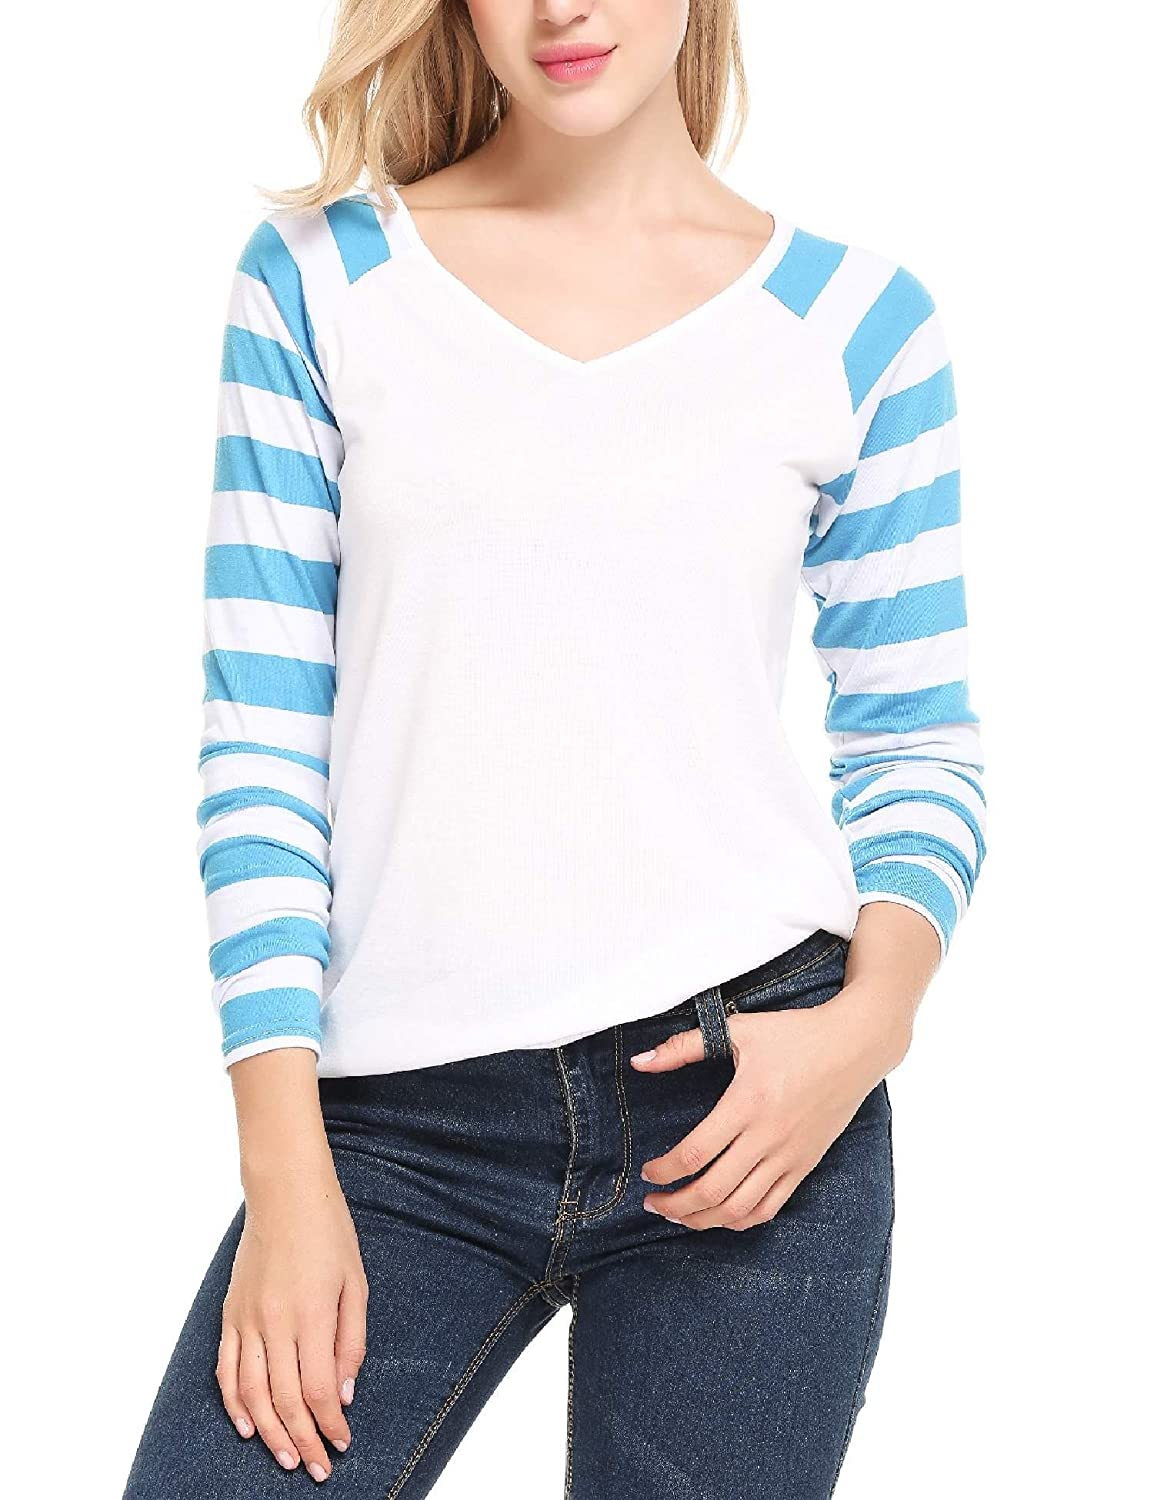 625d462491 Zeagoo Women Casual Striped Raglan Sleeves V Neck Baseball Tee T Shirt at Amazon  Women's Clothing store: